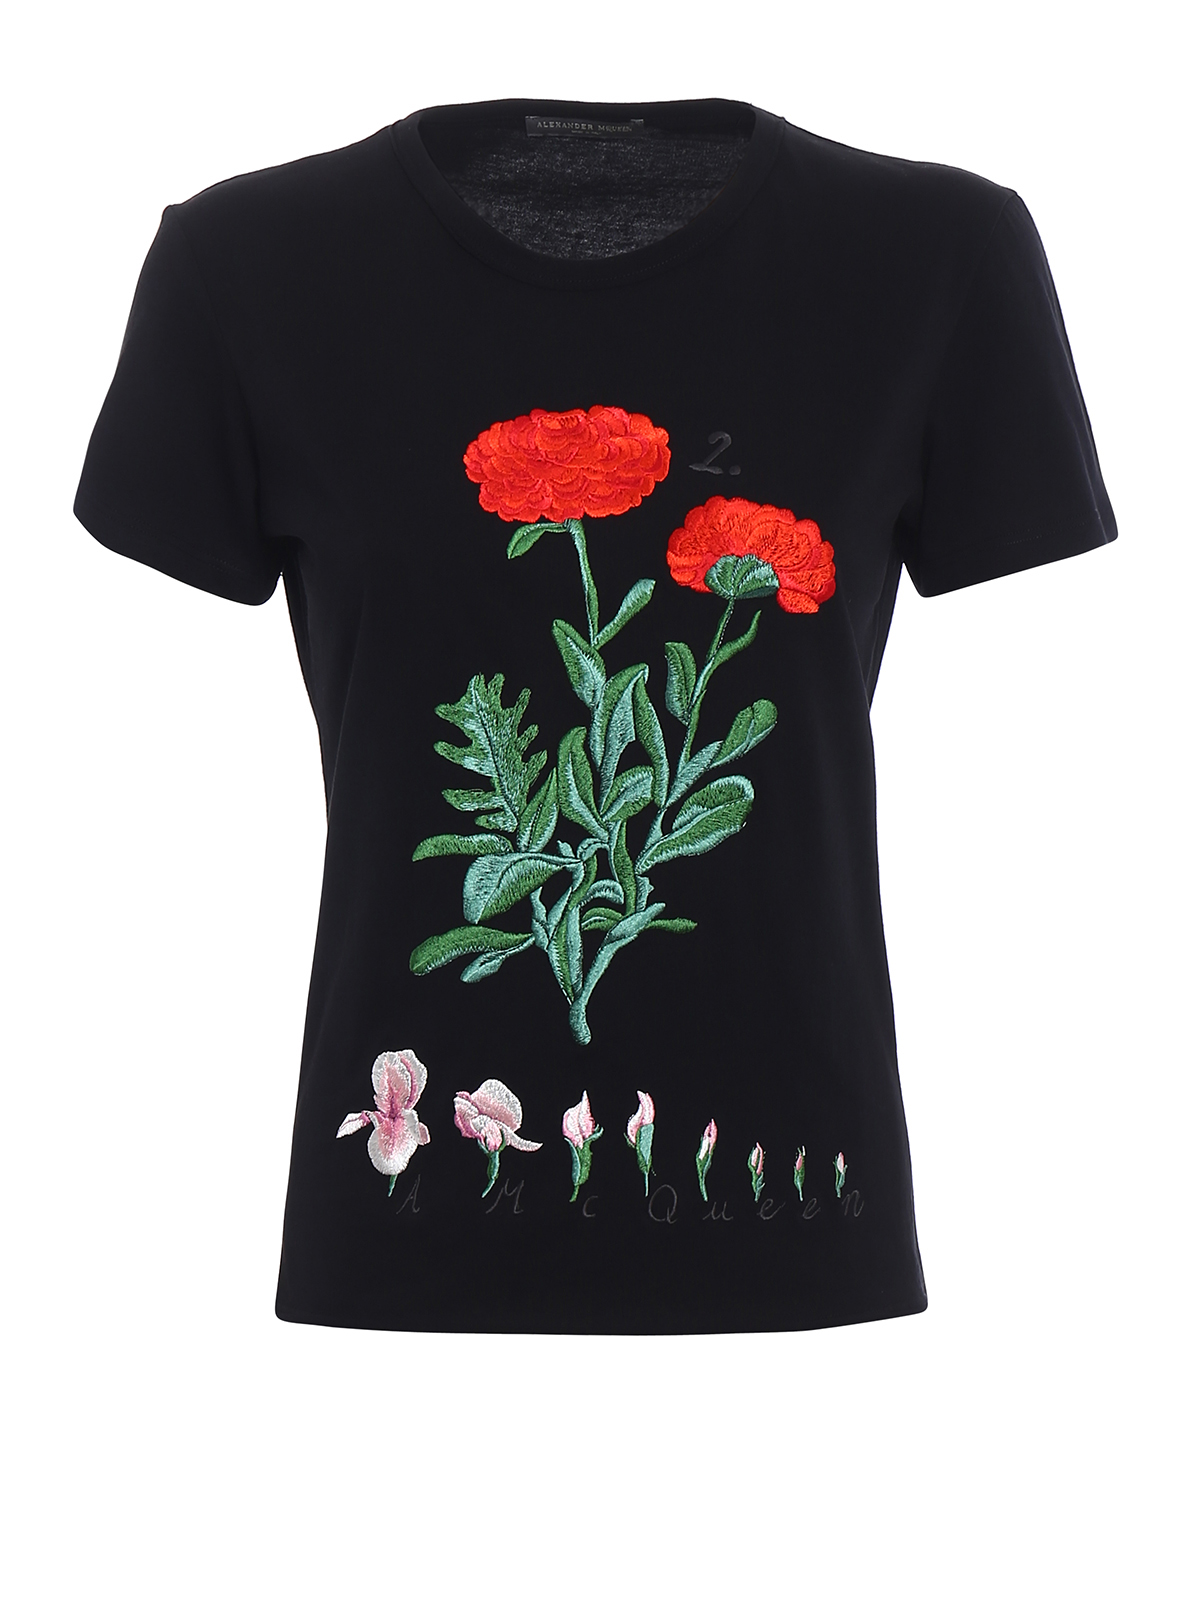 Cotton embroidered black t shirt by alexander mcqueen